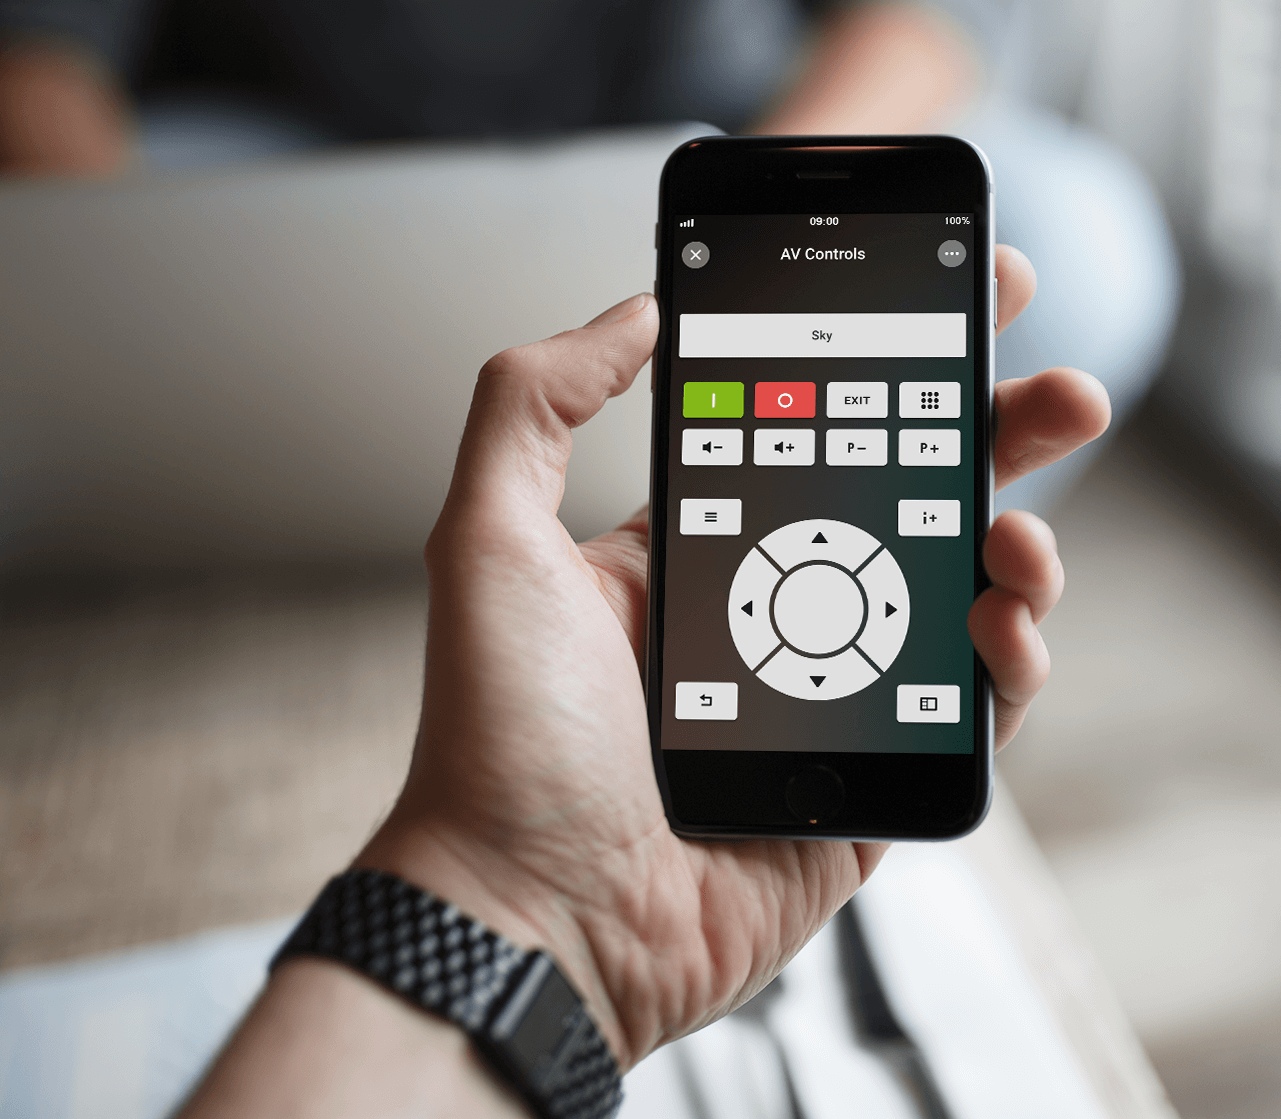 Loxone Press Resources - Loxone Smart Home App